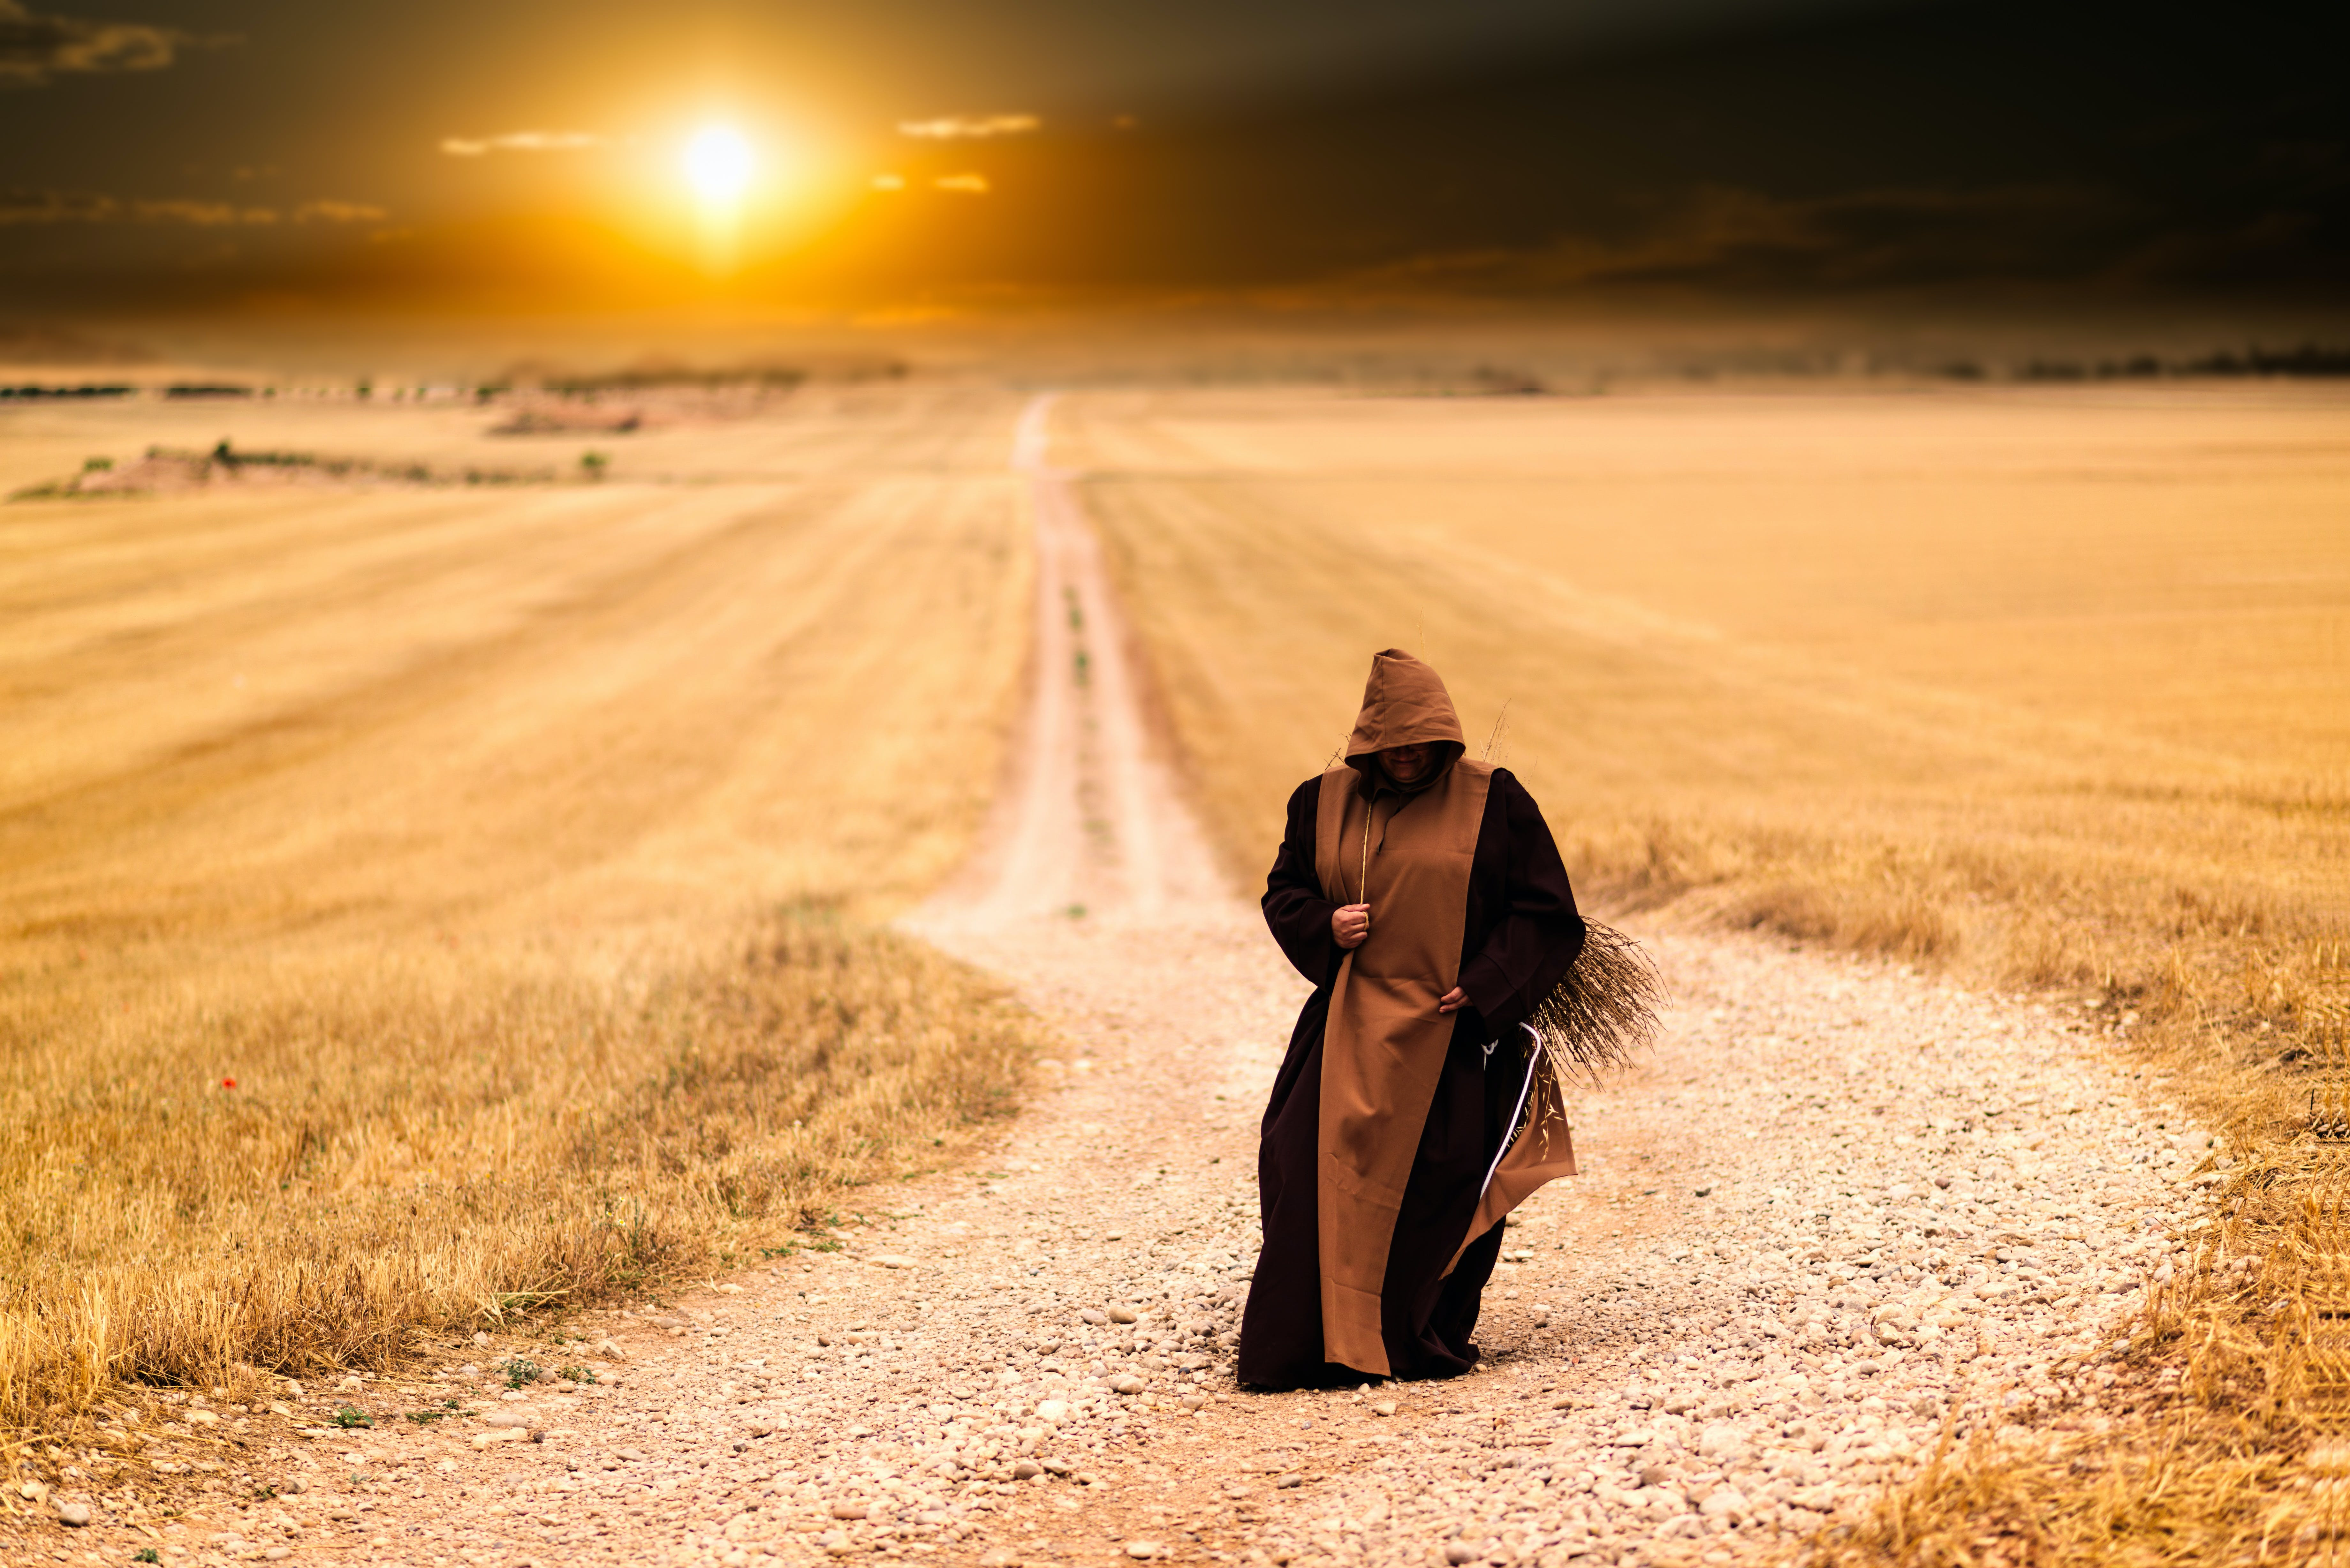 Person in Brown and Black Robe in the Middle of the Road